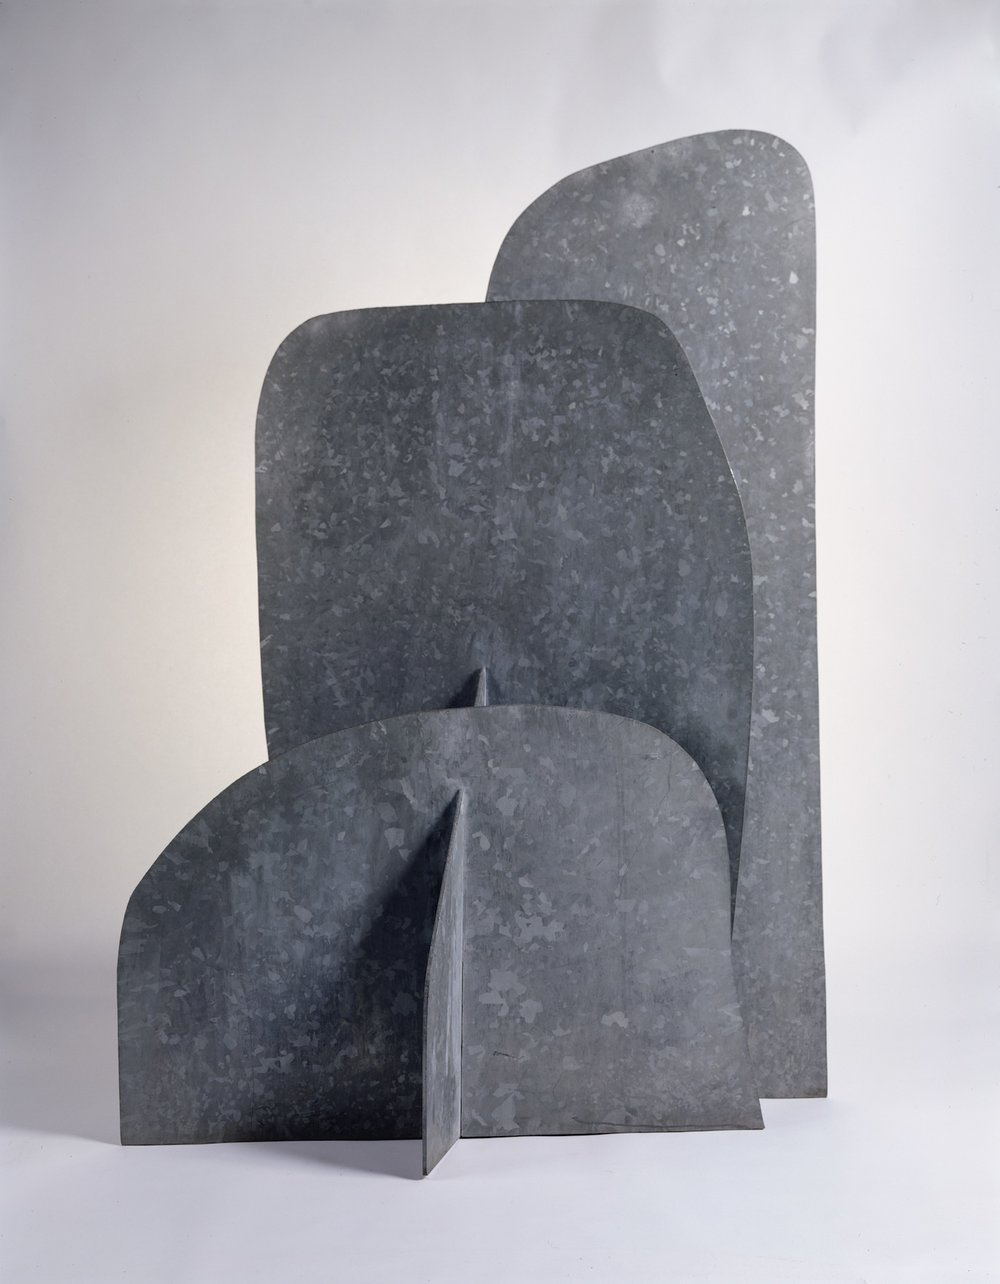 Isamu Noguchi, 'Cloud Mountain', 1982-1983, hot-dipped galvanised steel, 177.2 x 125.1 x 71.8cm. © The Isamu Noguchi Foundation and Garden Museum, New York / ARS. Photo: Kevin Noble.